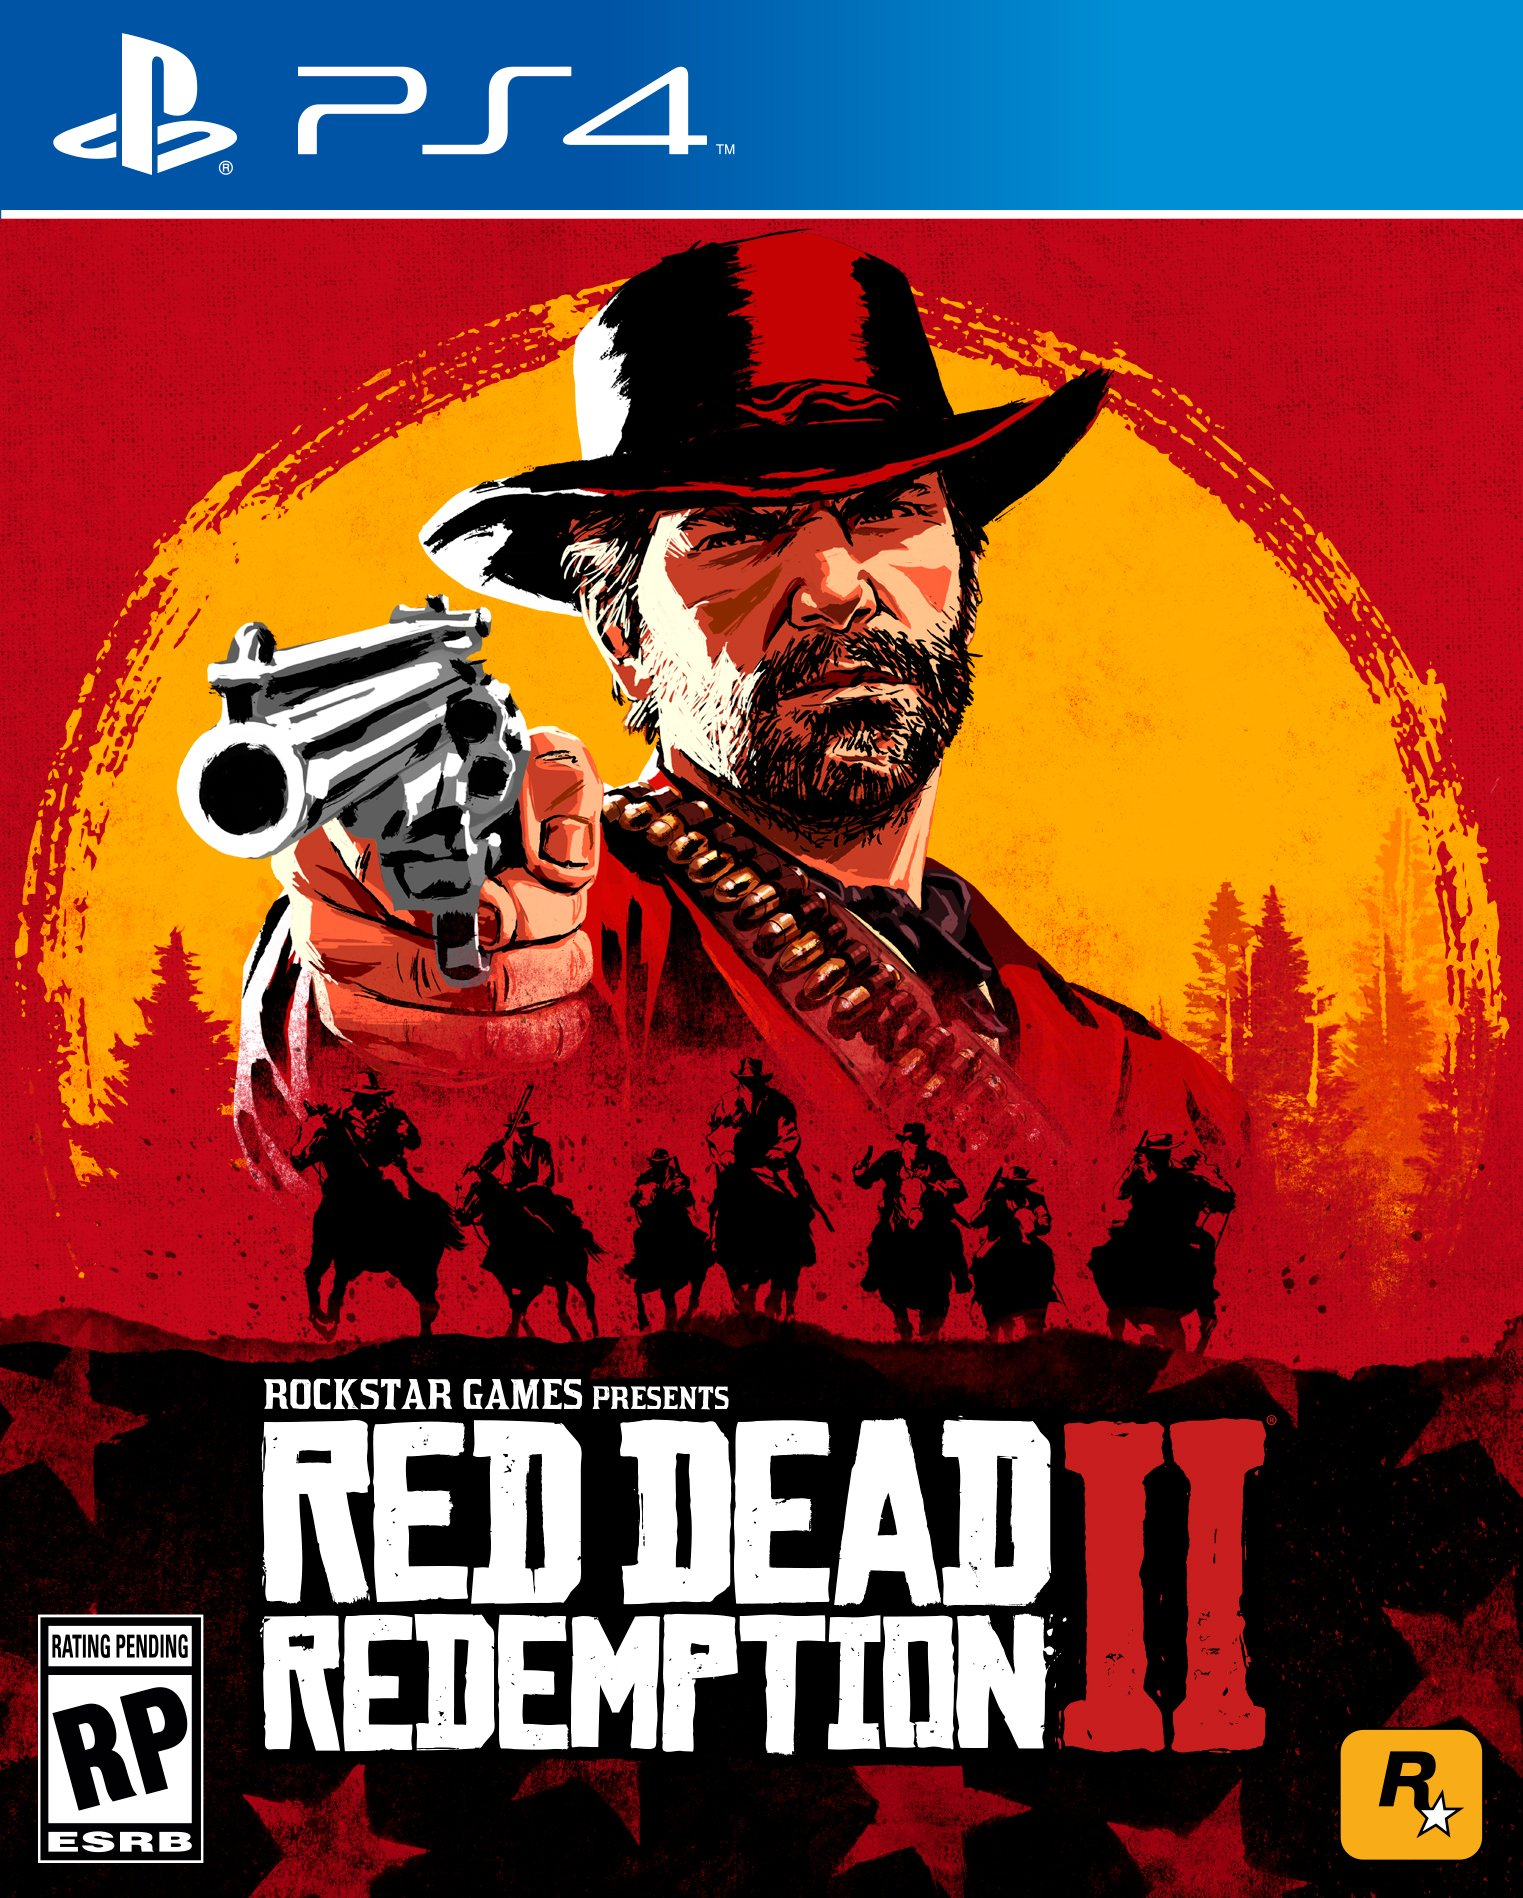 Buy Red Dead Redemption Now!